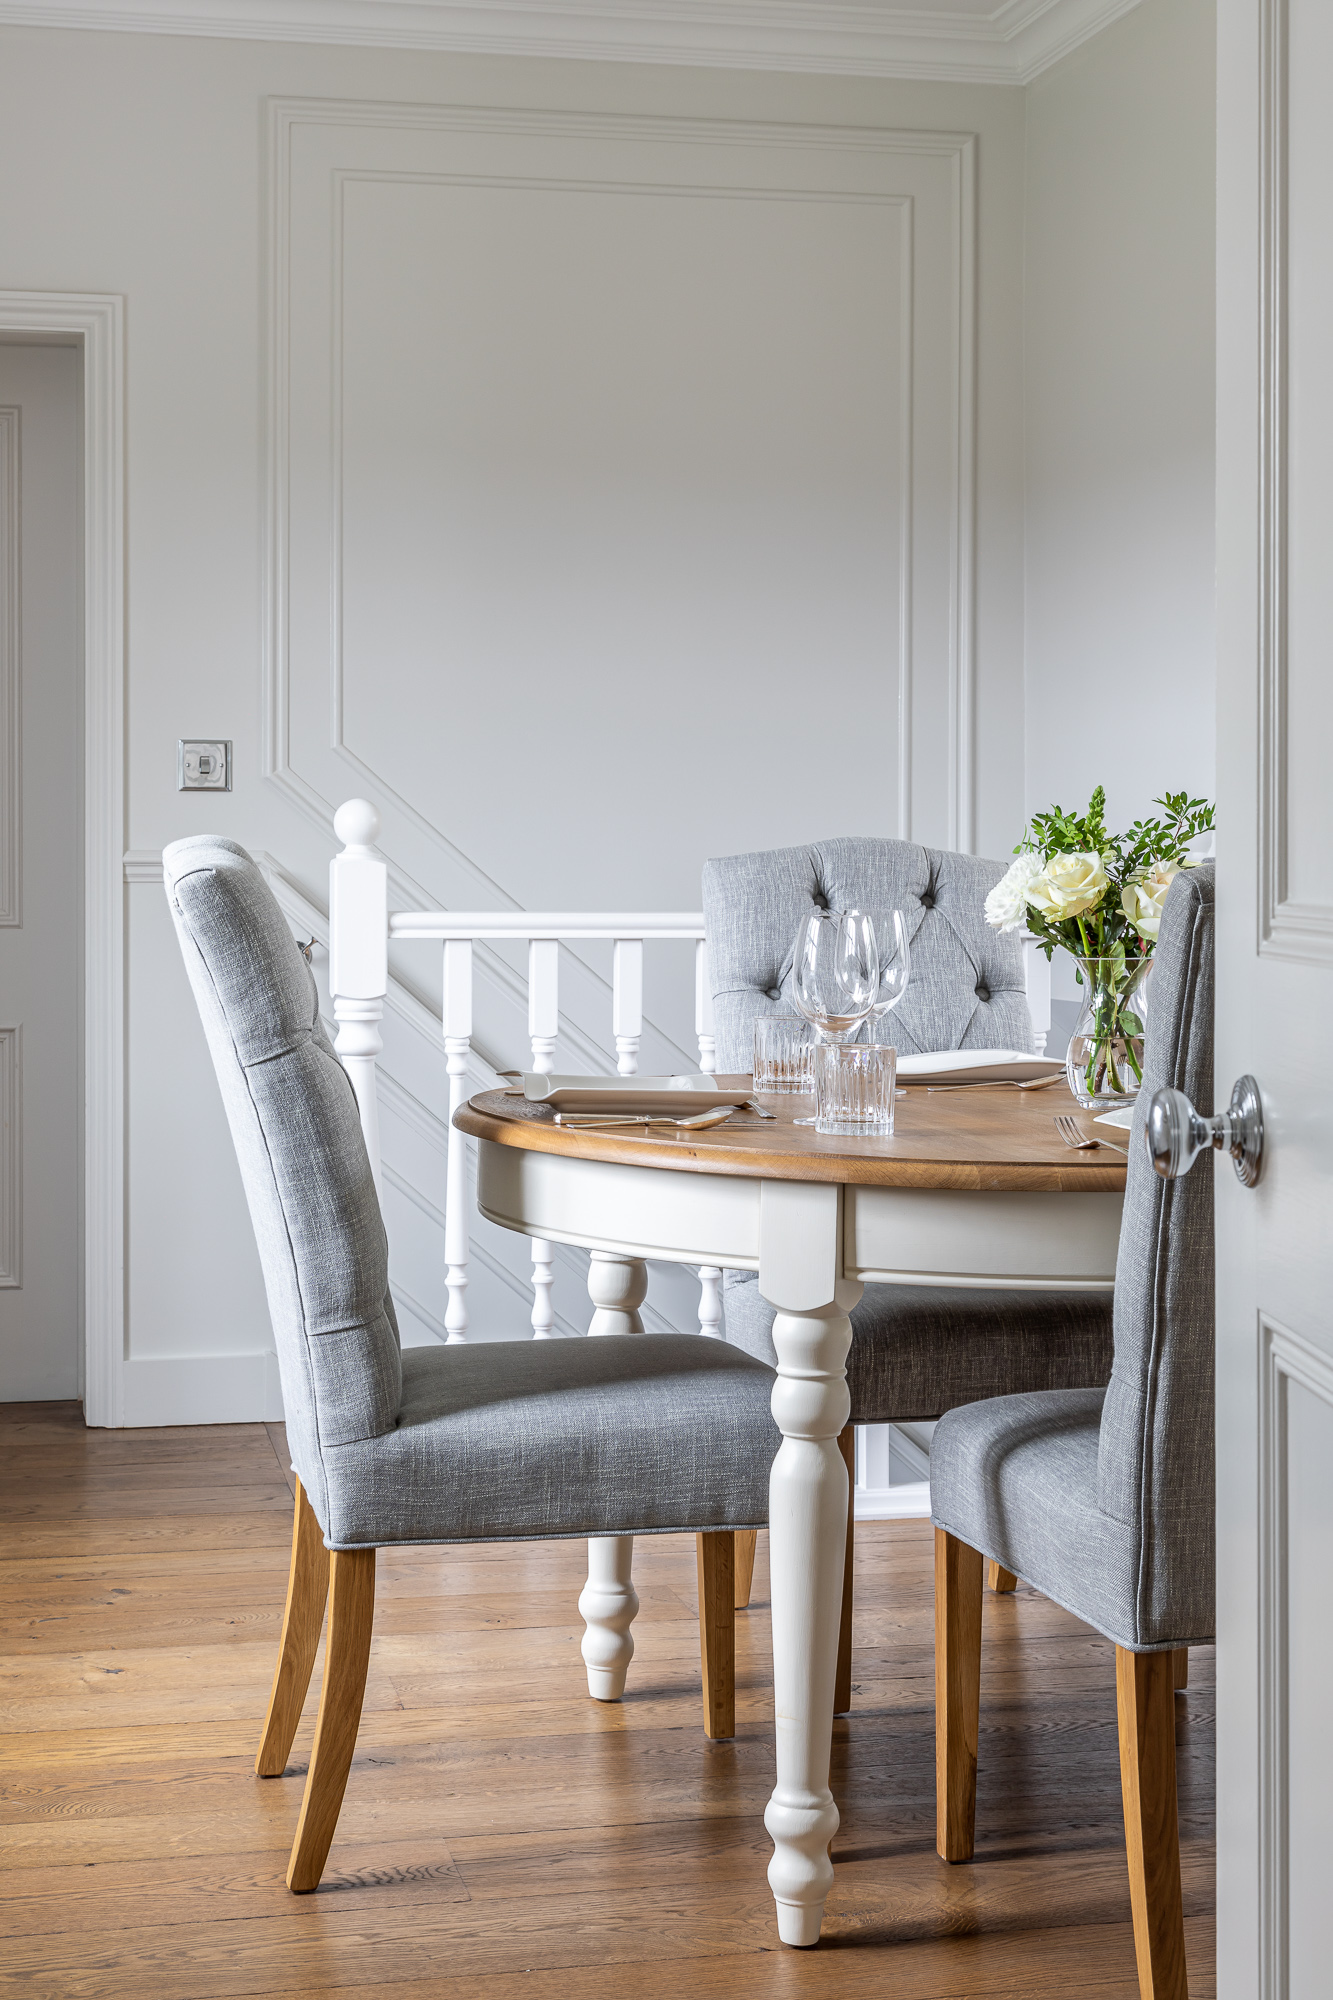 jonathan bond, interior photographer, dining room chair, harlow